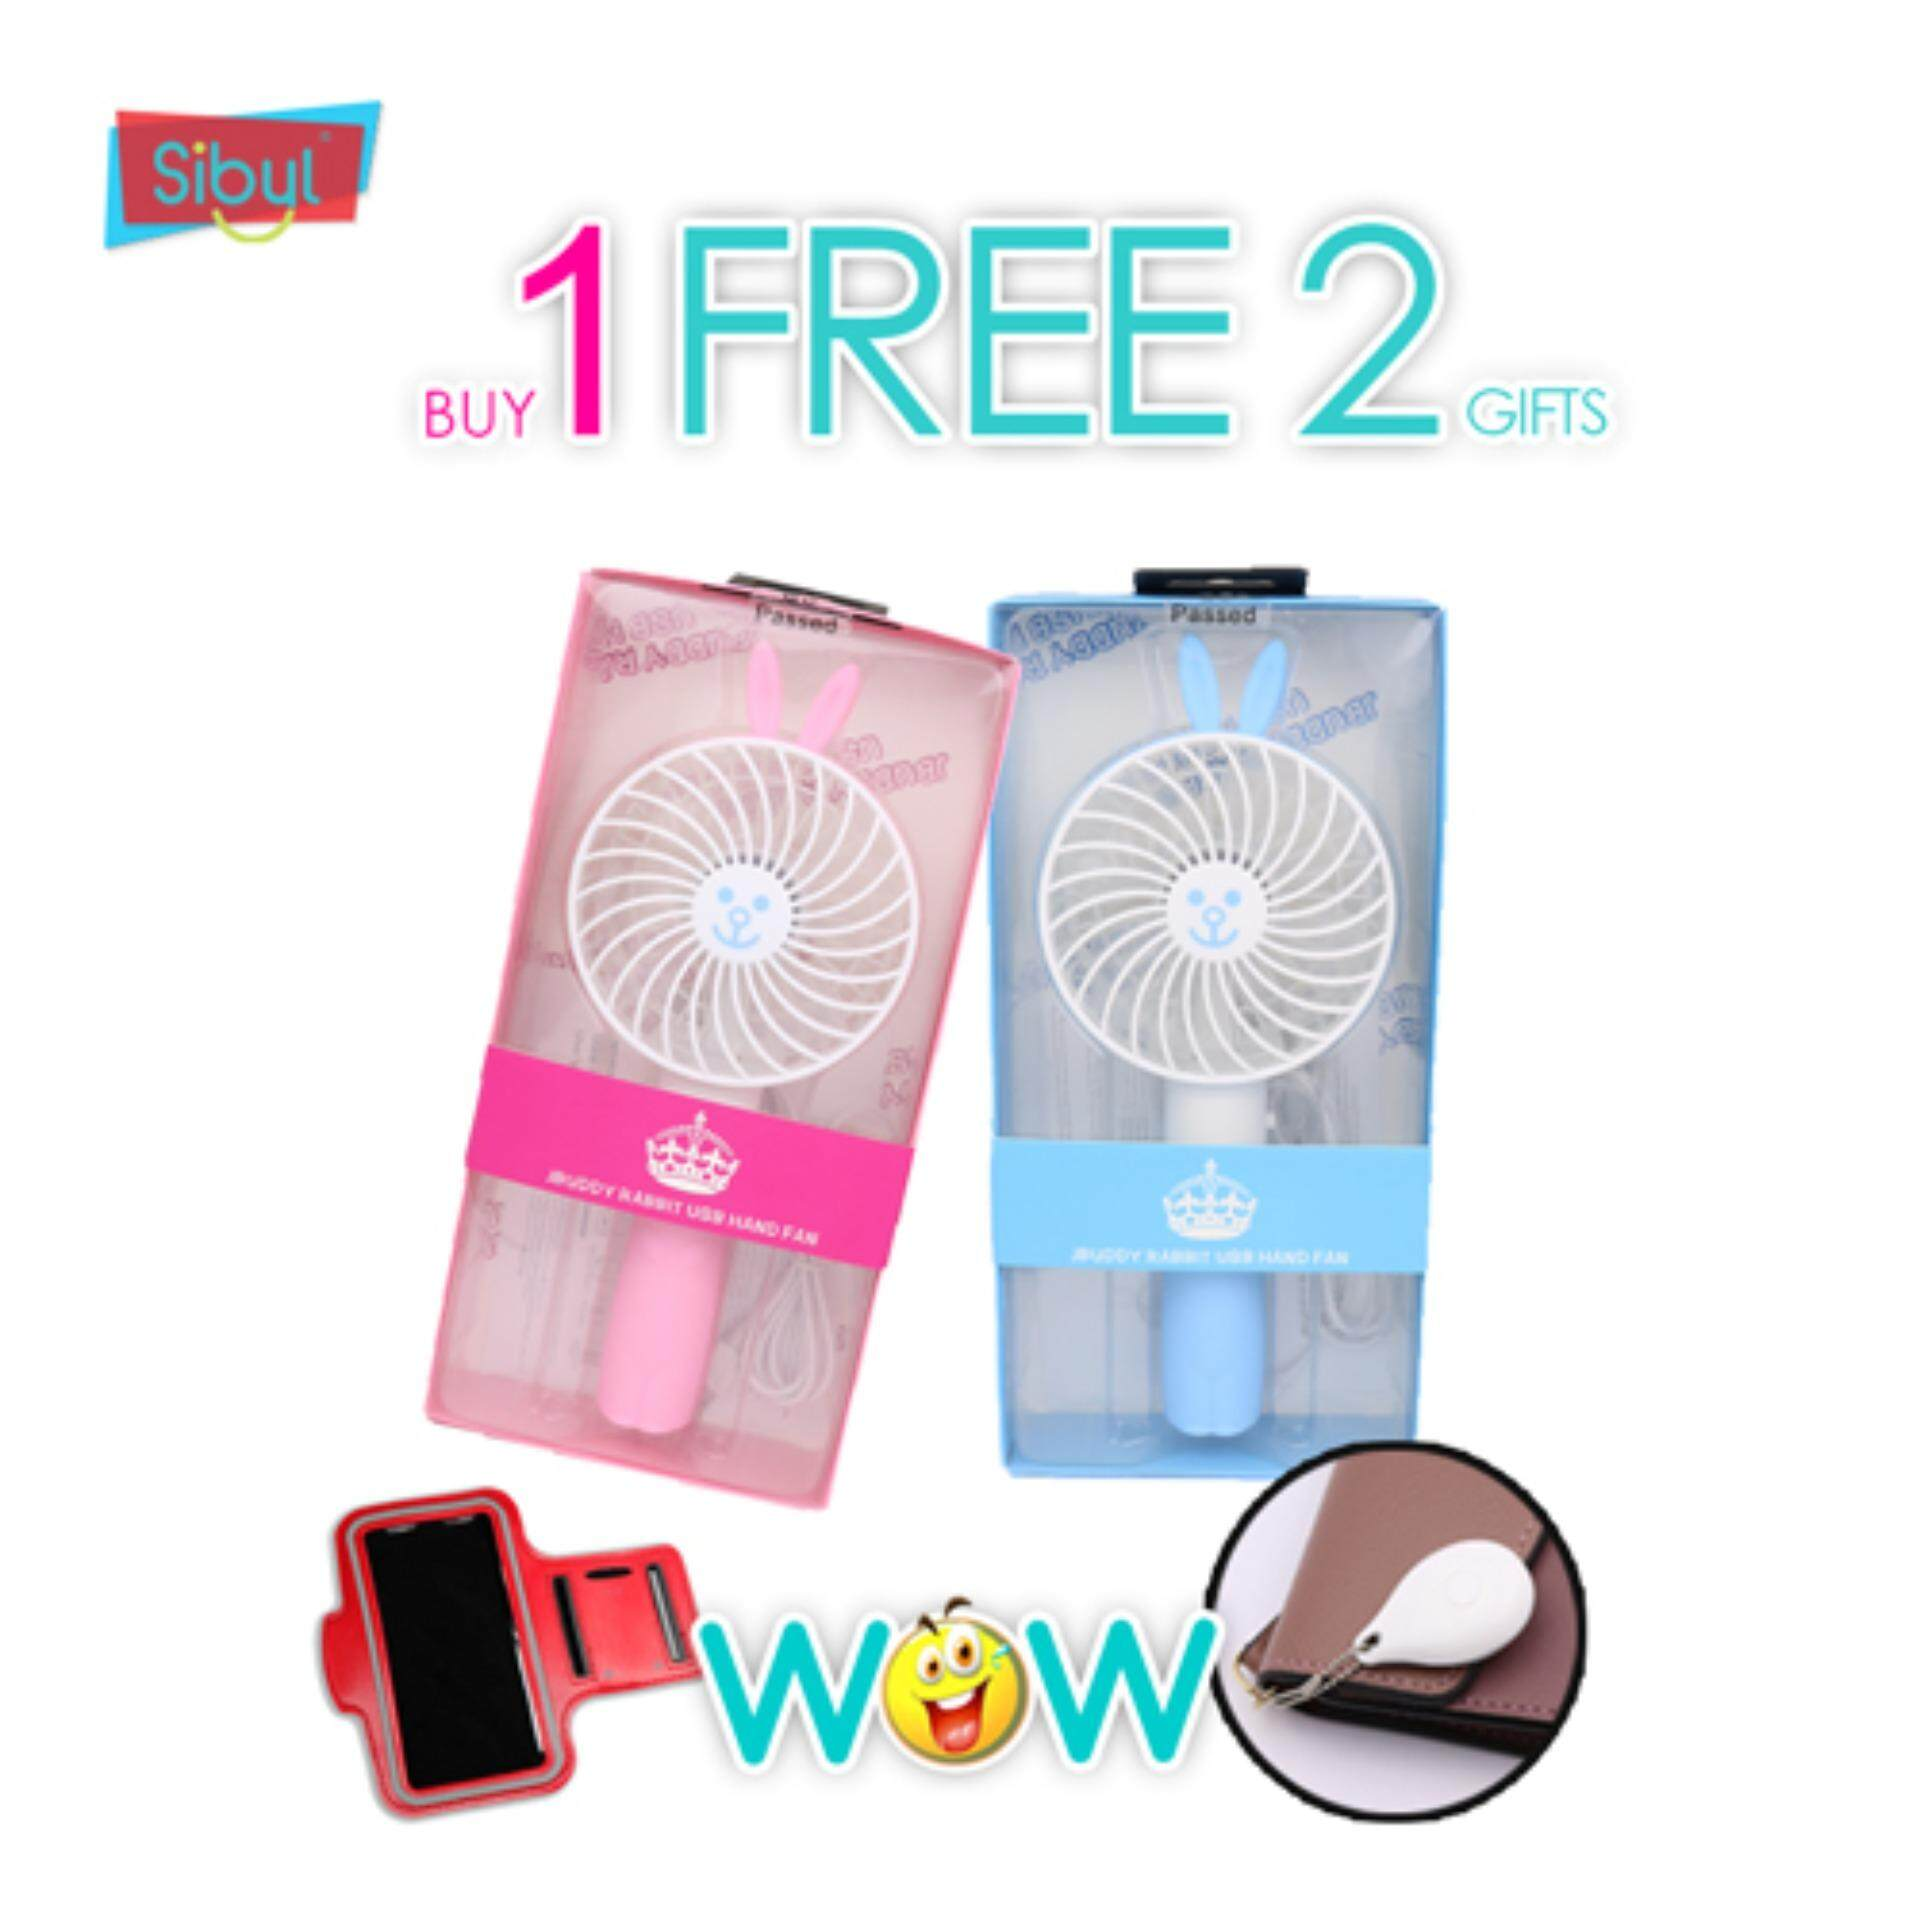 Fans Heatsinks Buy At Best Price In Malaysia Computer Fan 3 Wire Diagram How Pc Work Local Supplier Sibyl Jbuddy Hand 1 Free 2 Gifts